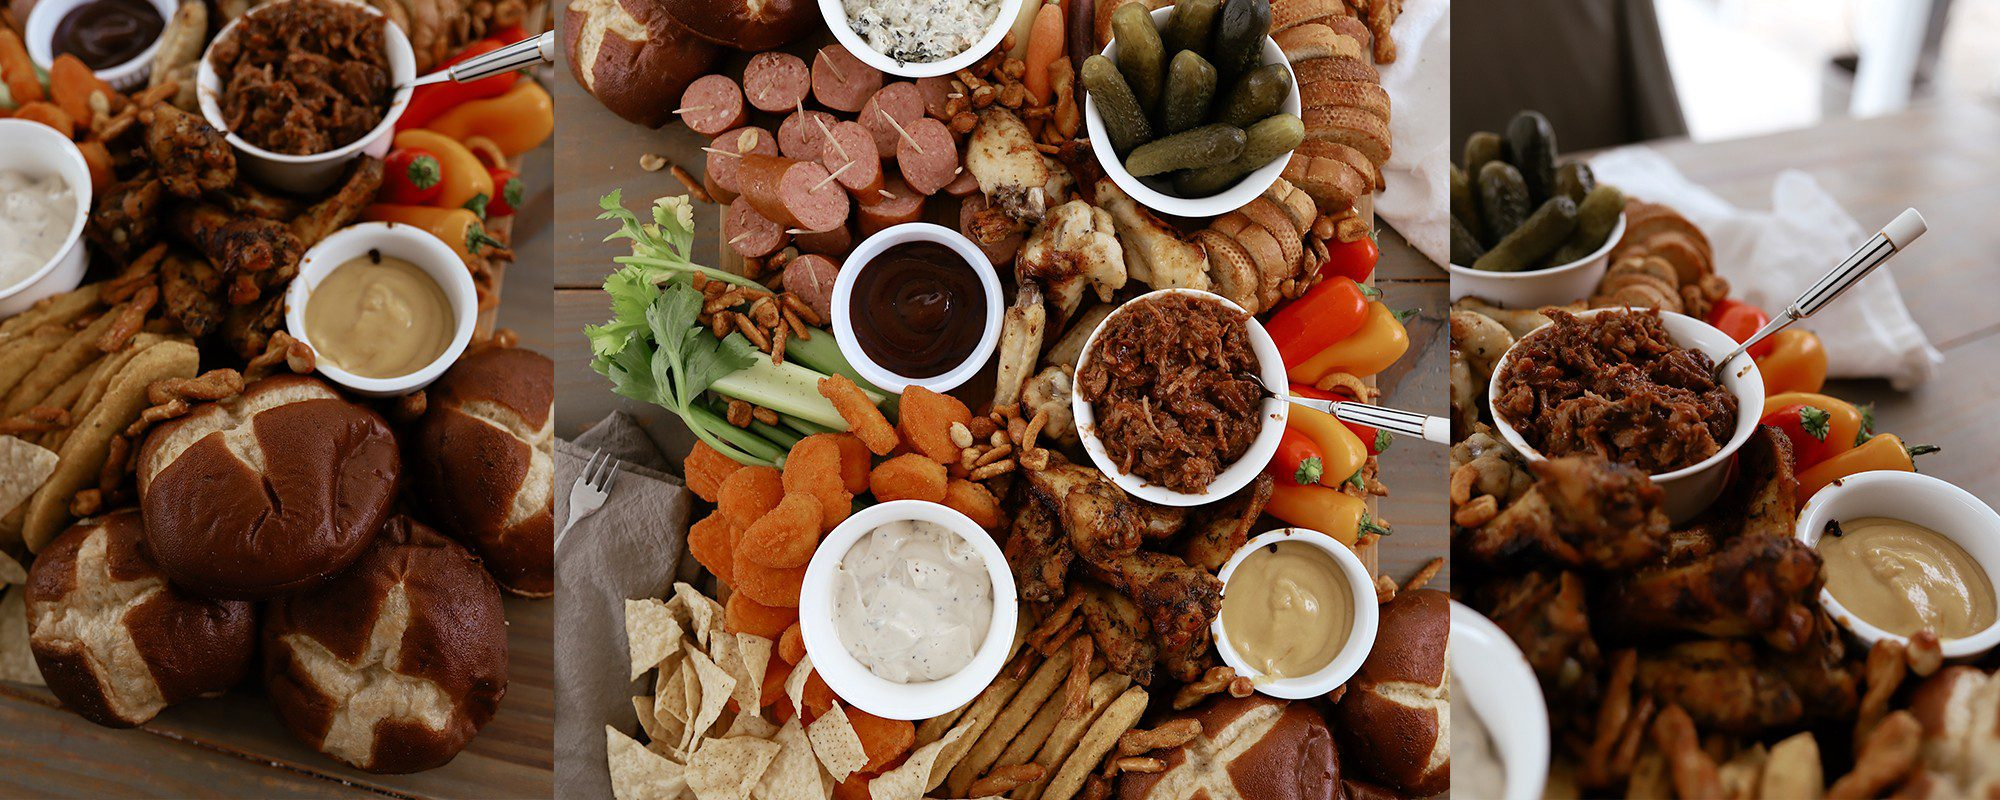 Game Day Appetizer Ideas: Charcuterie Board Essentials